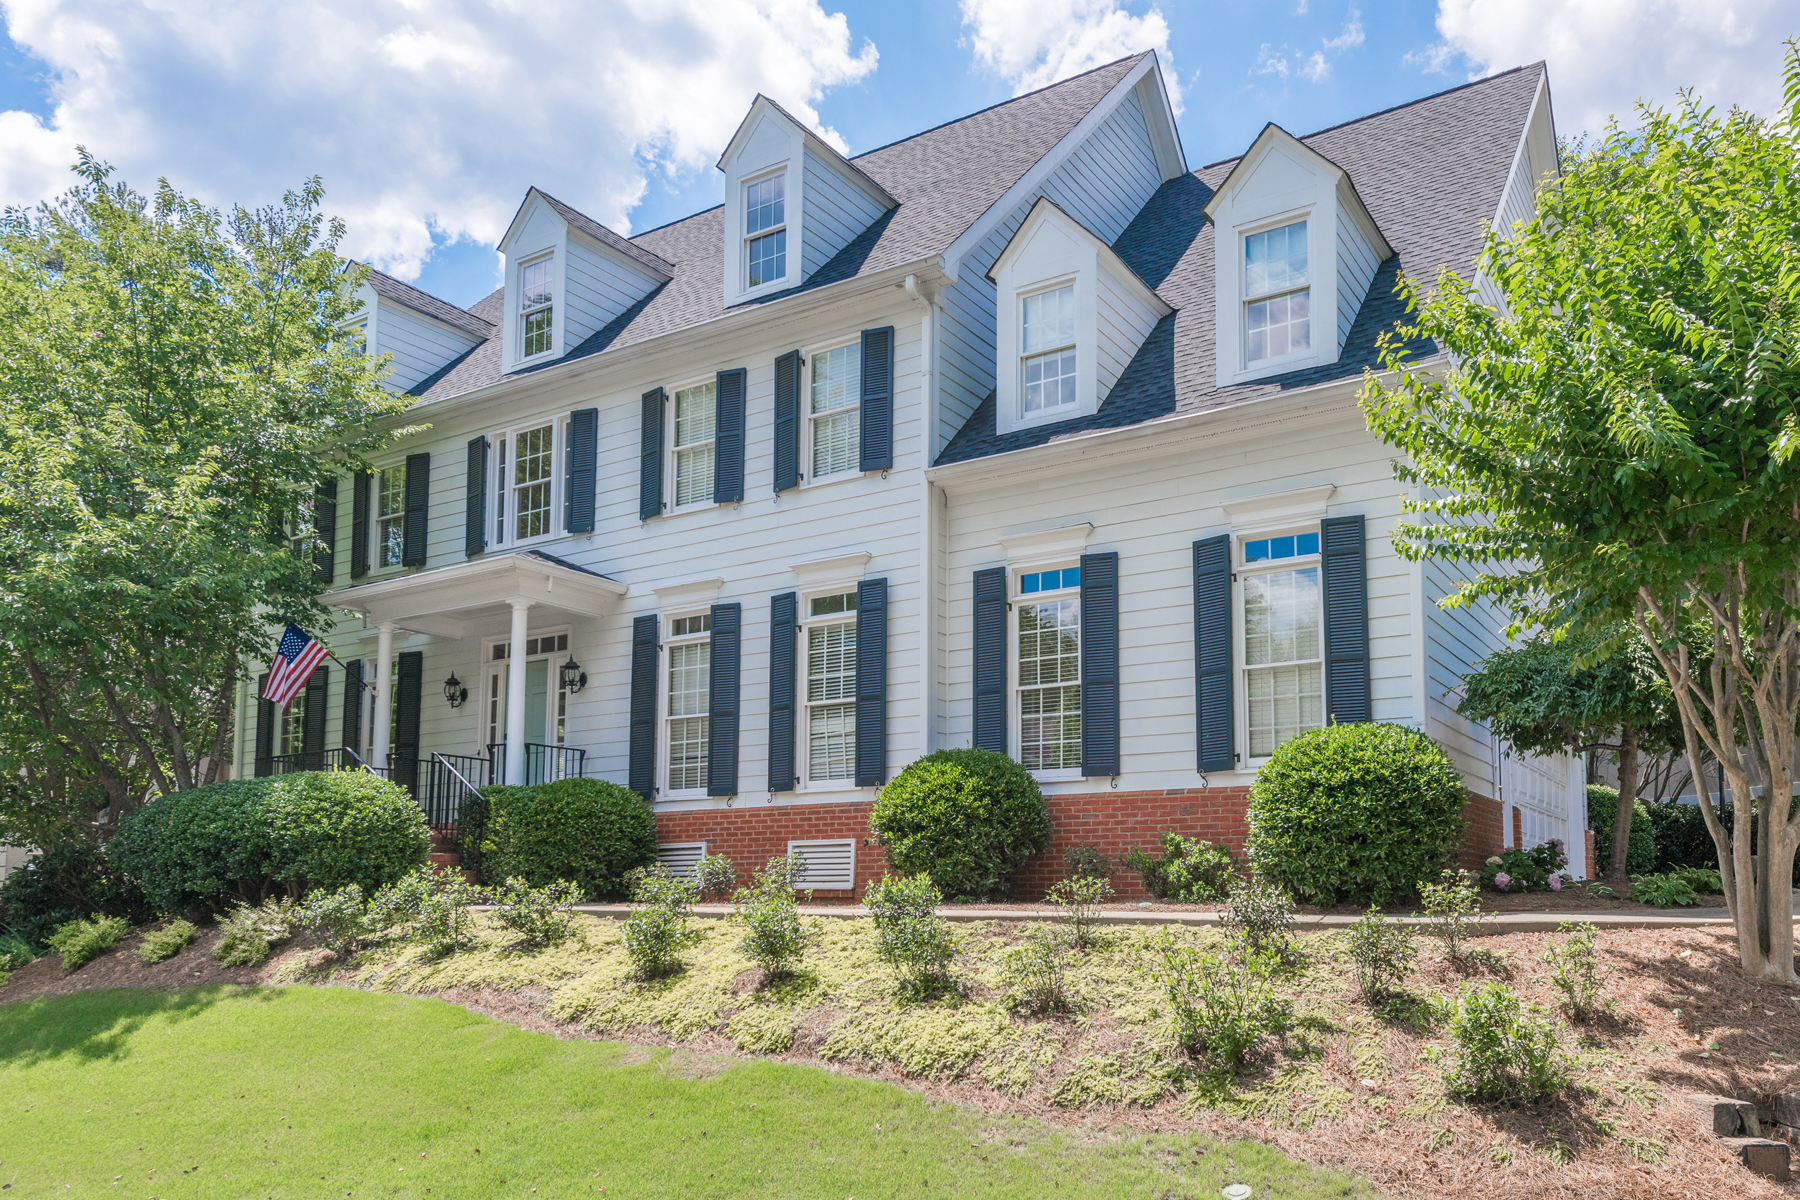 Tek Ailelik Ev için Satış at Classic Traditional Home With Open Floor Plan 4020 Stephens Mill Run NE Atlanta, Georgia, 30342 Amerika Birleşik Devletleri